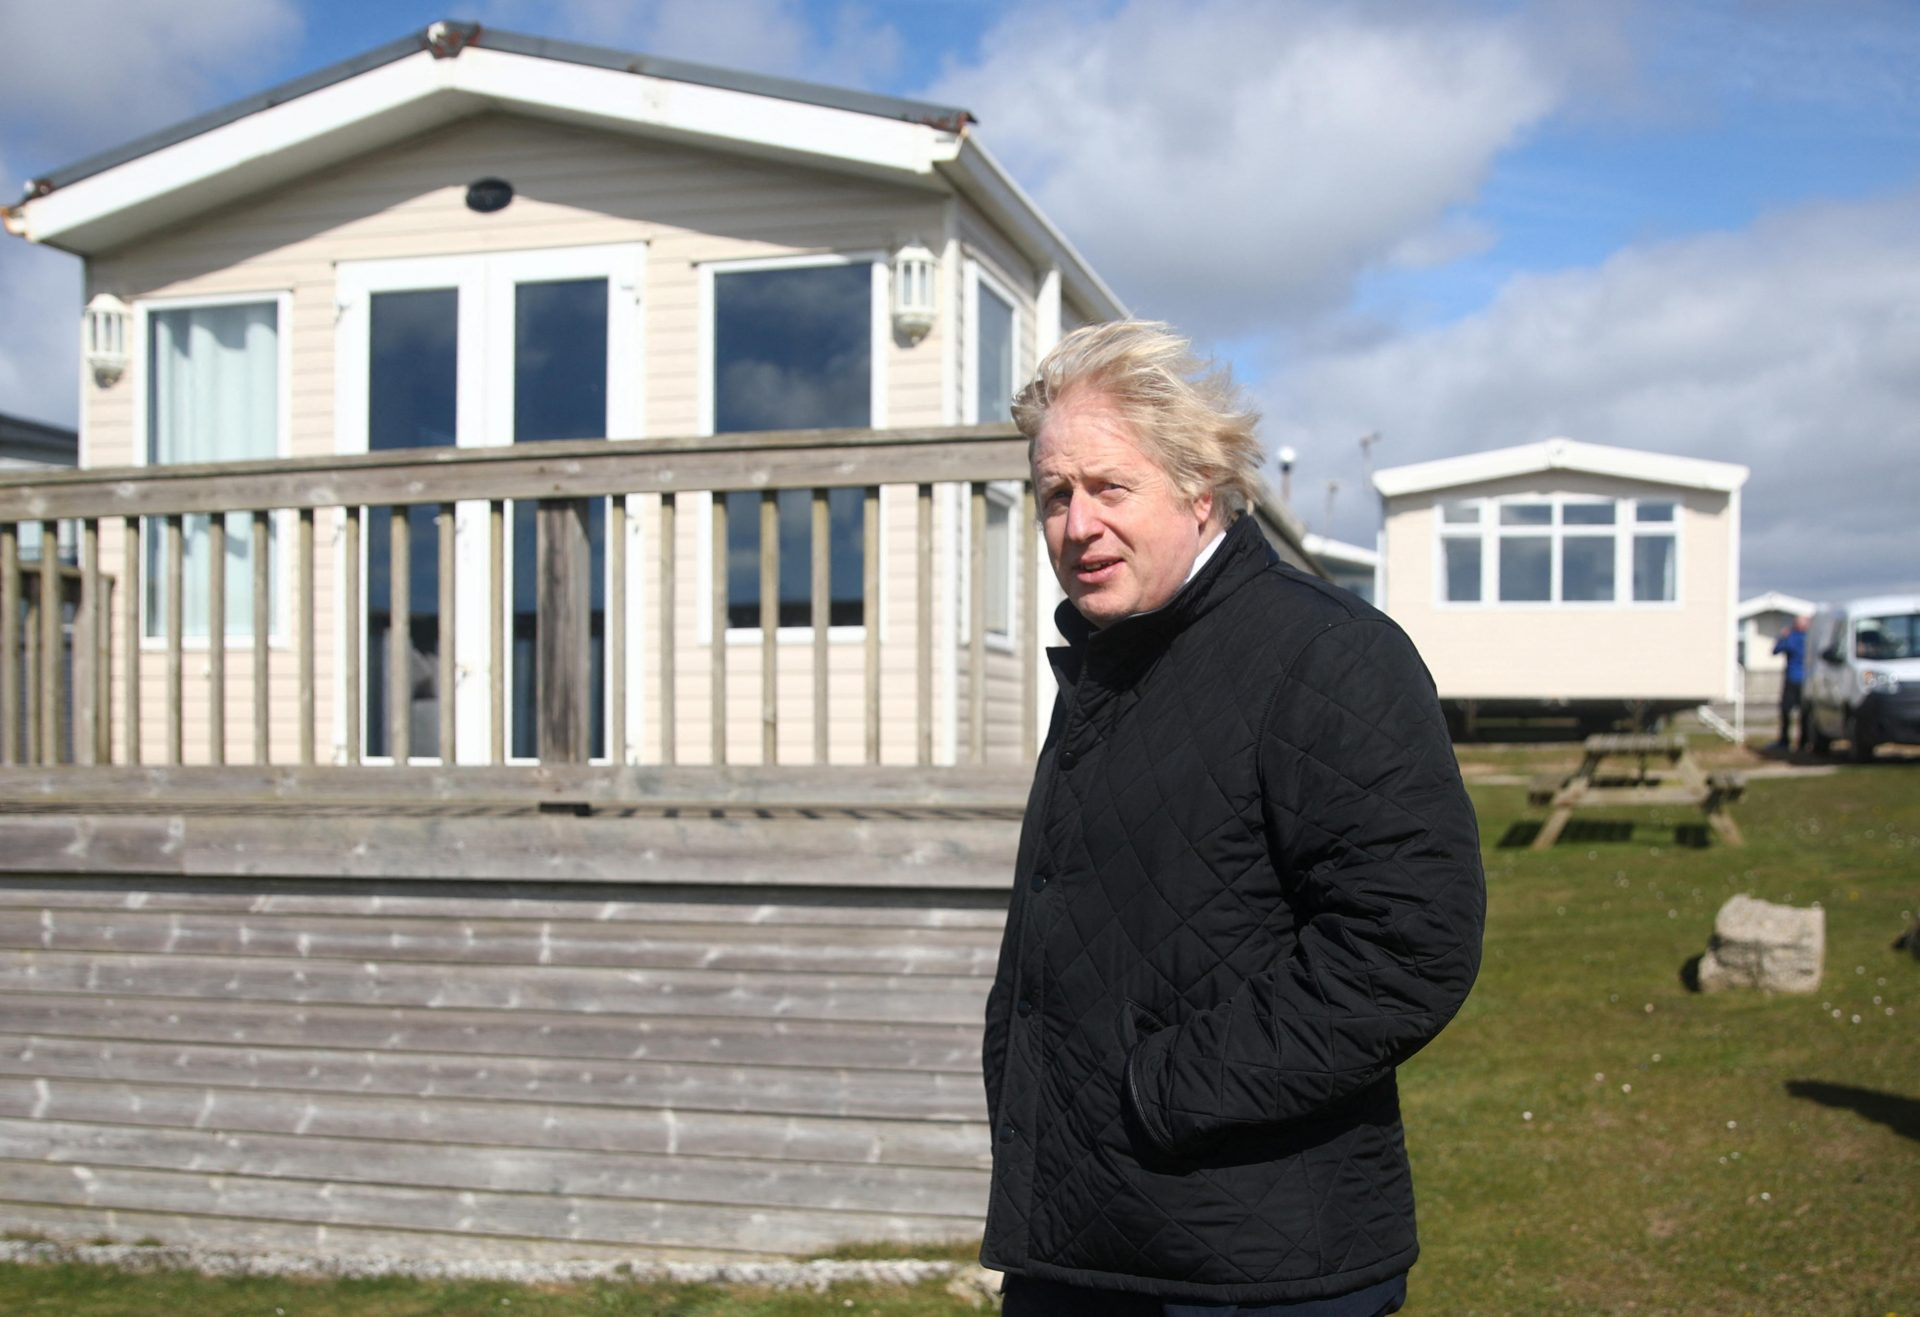 Boris Johnson visits a caravan park in Cornwall, before going somewhere far more glamorous on his own holiday. Photo: Tom Nicholson/Pool/AFP via Getty Images.